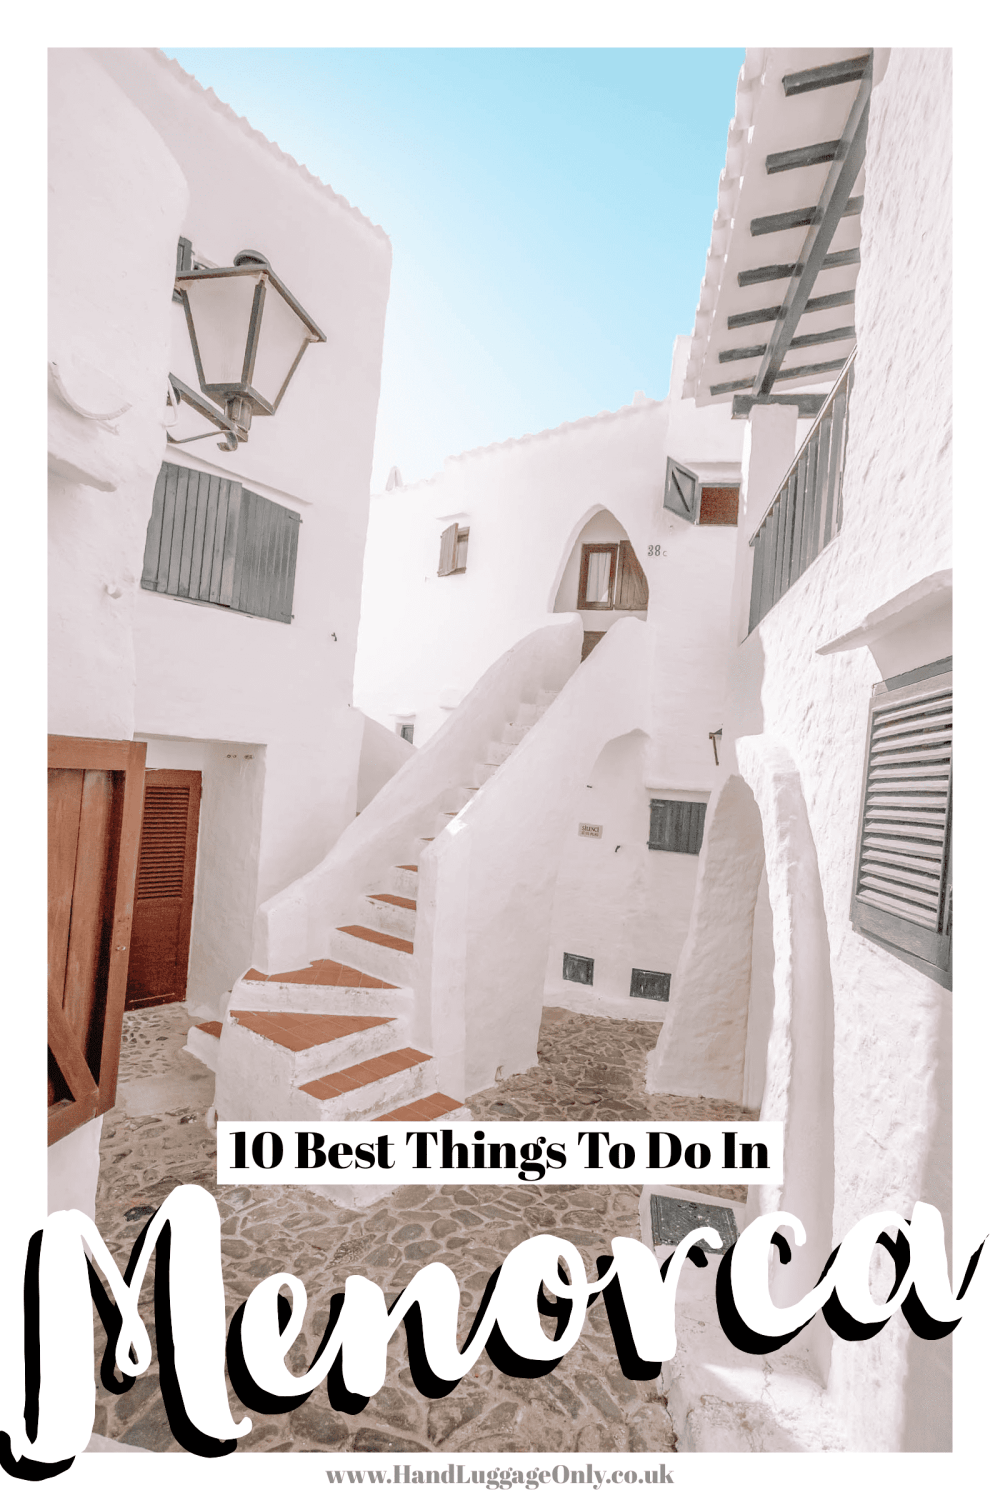 Best Things To Do In Menorca (1)